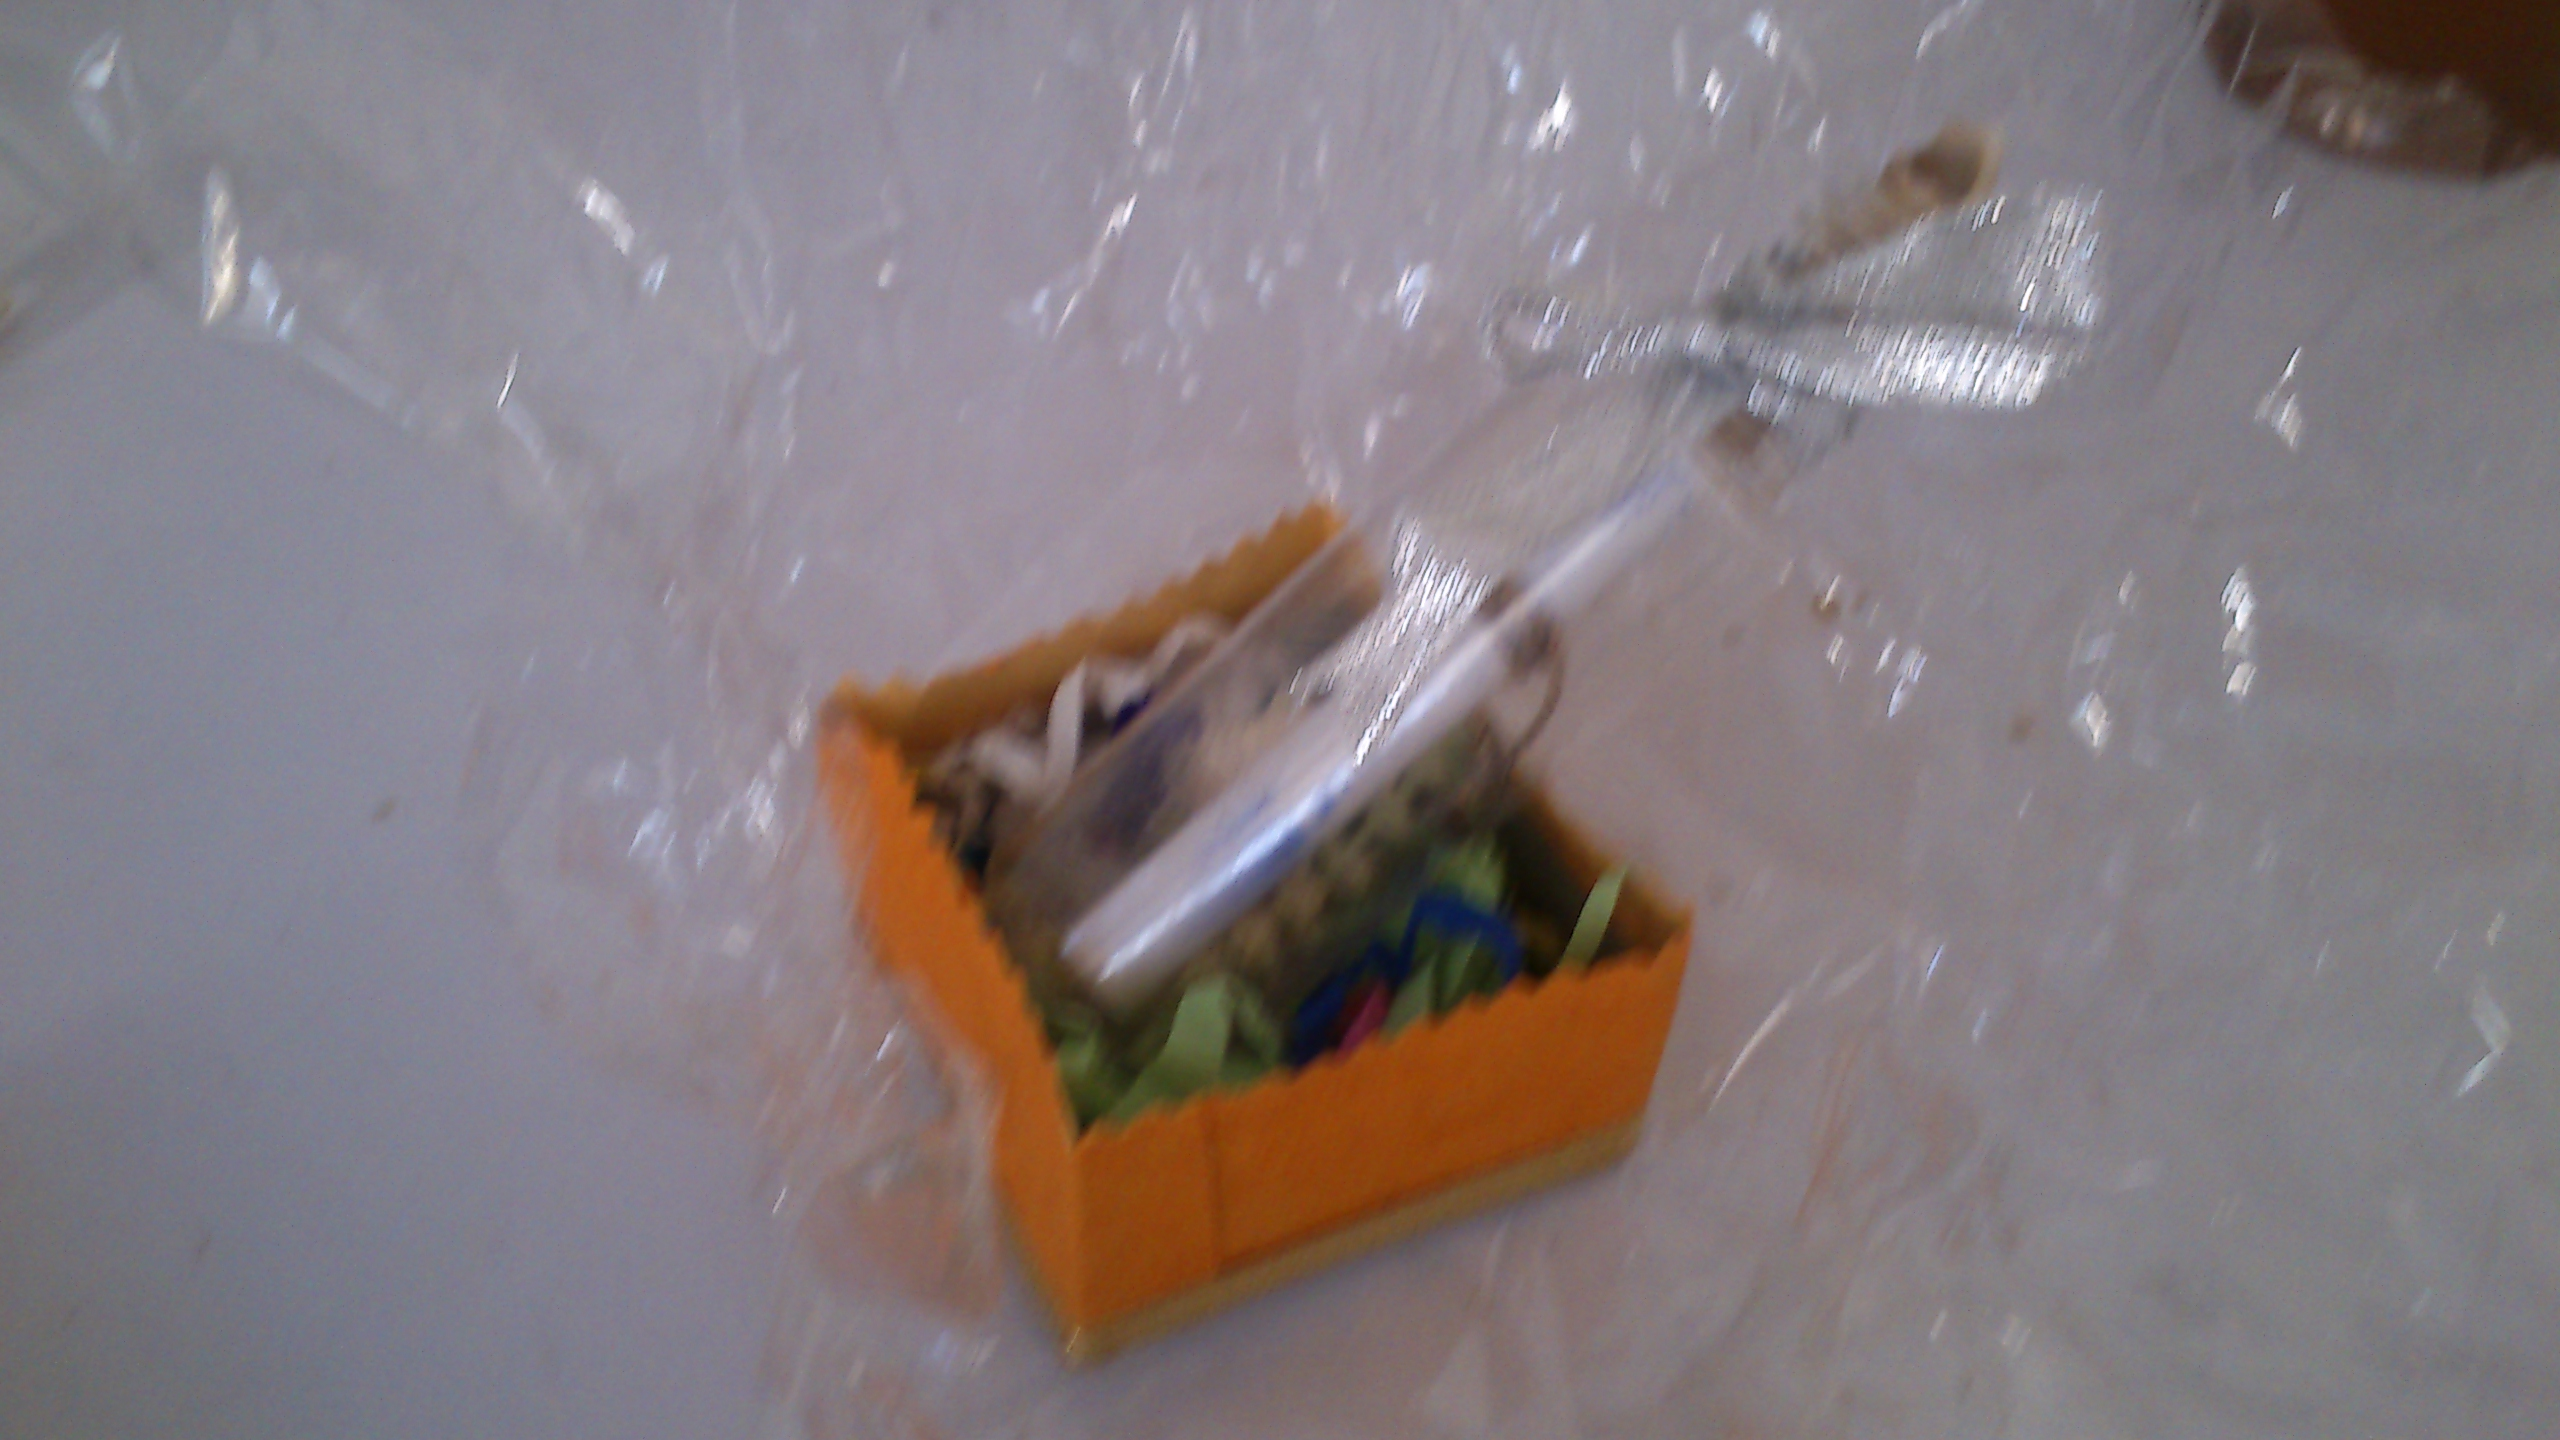 Picture of Place the Bottle in the Outer Box With Colored Papers Filled Inside As Per Step 1.